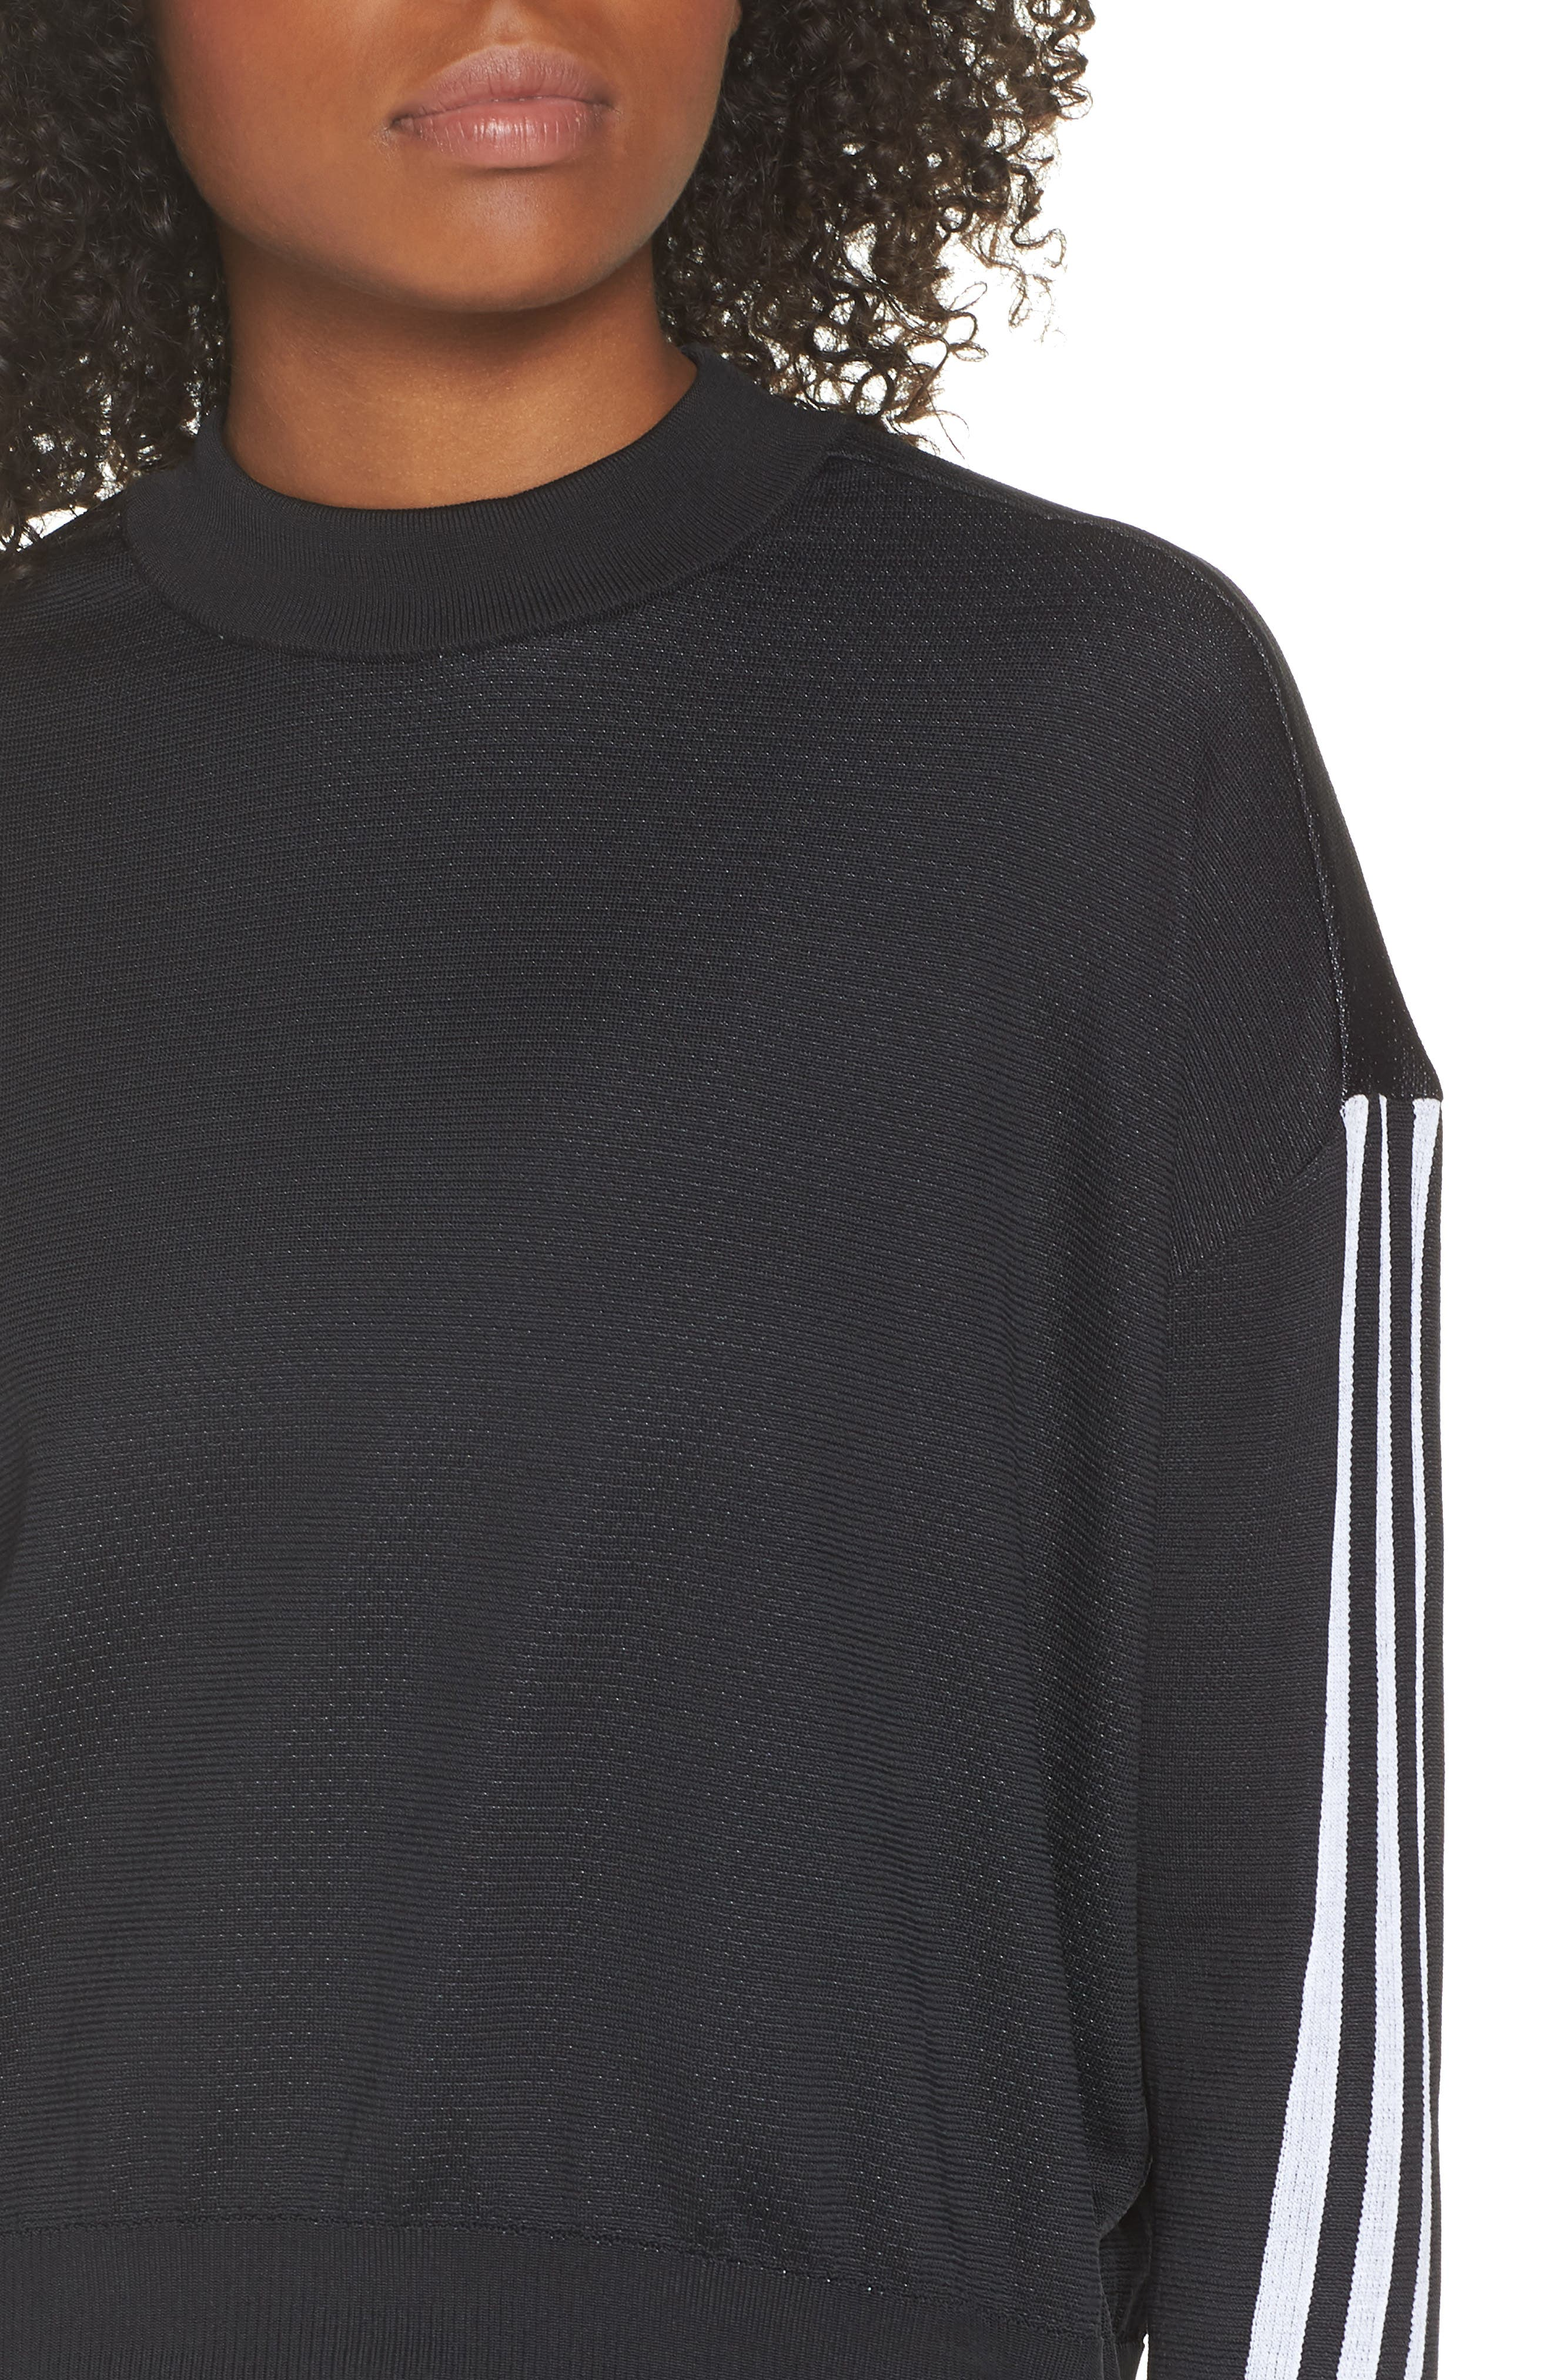 ID Knit Sweatshirt,                             Alternate thumbnail 6, color,                             001